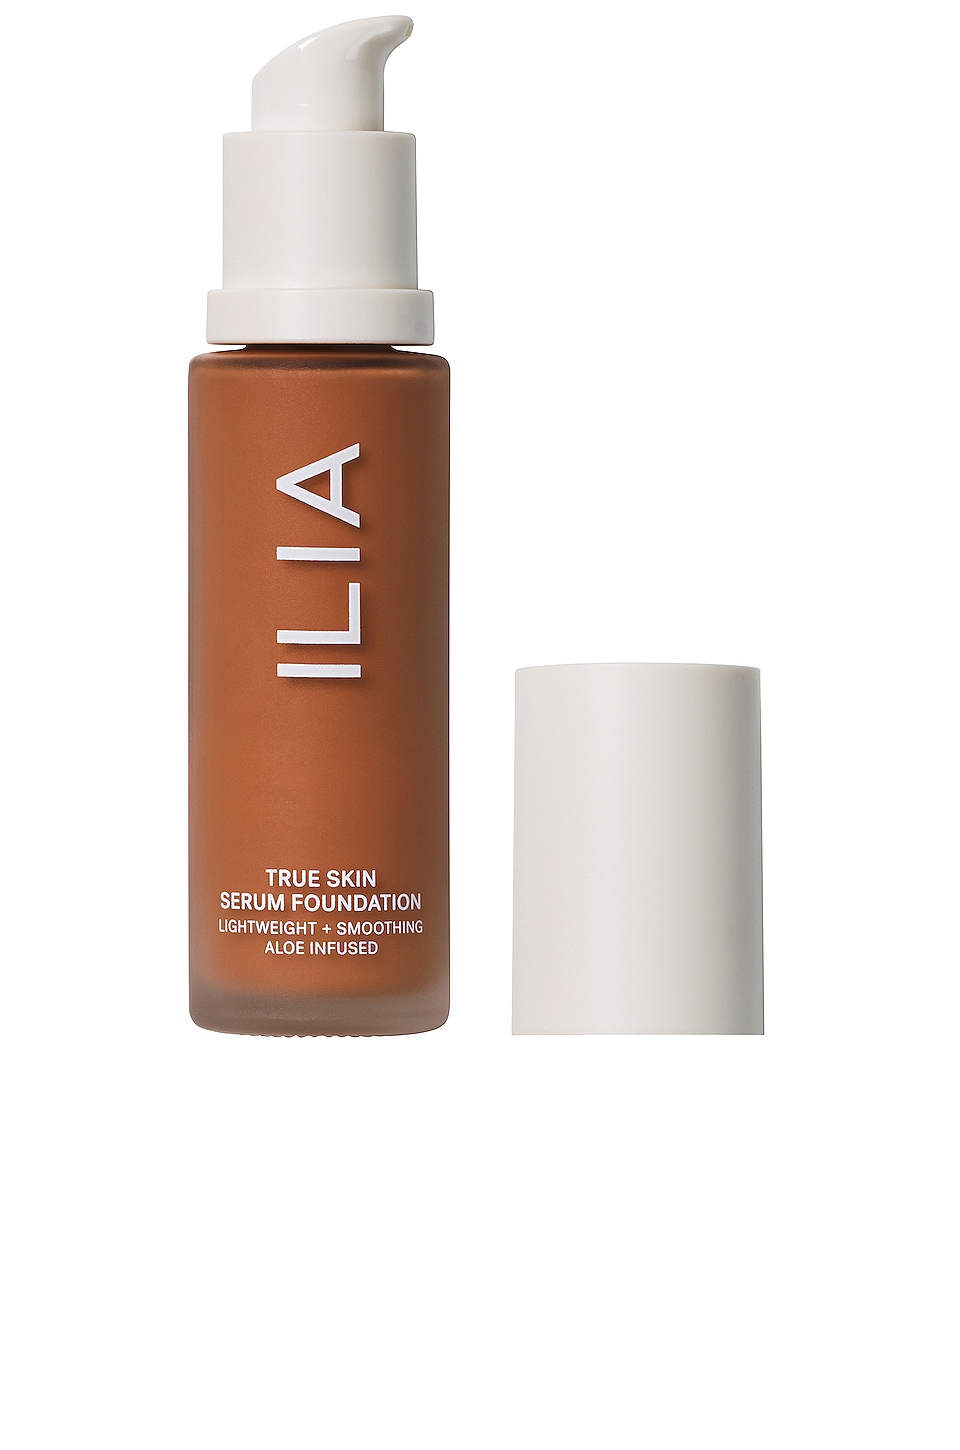 Ilia BASE TRUE SKIN SERUM